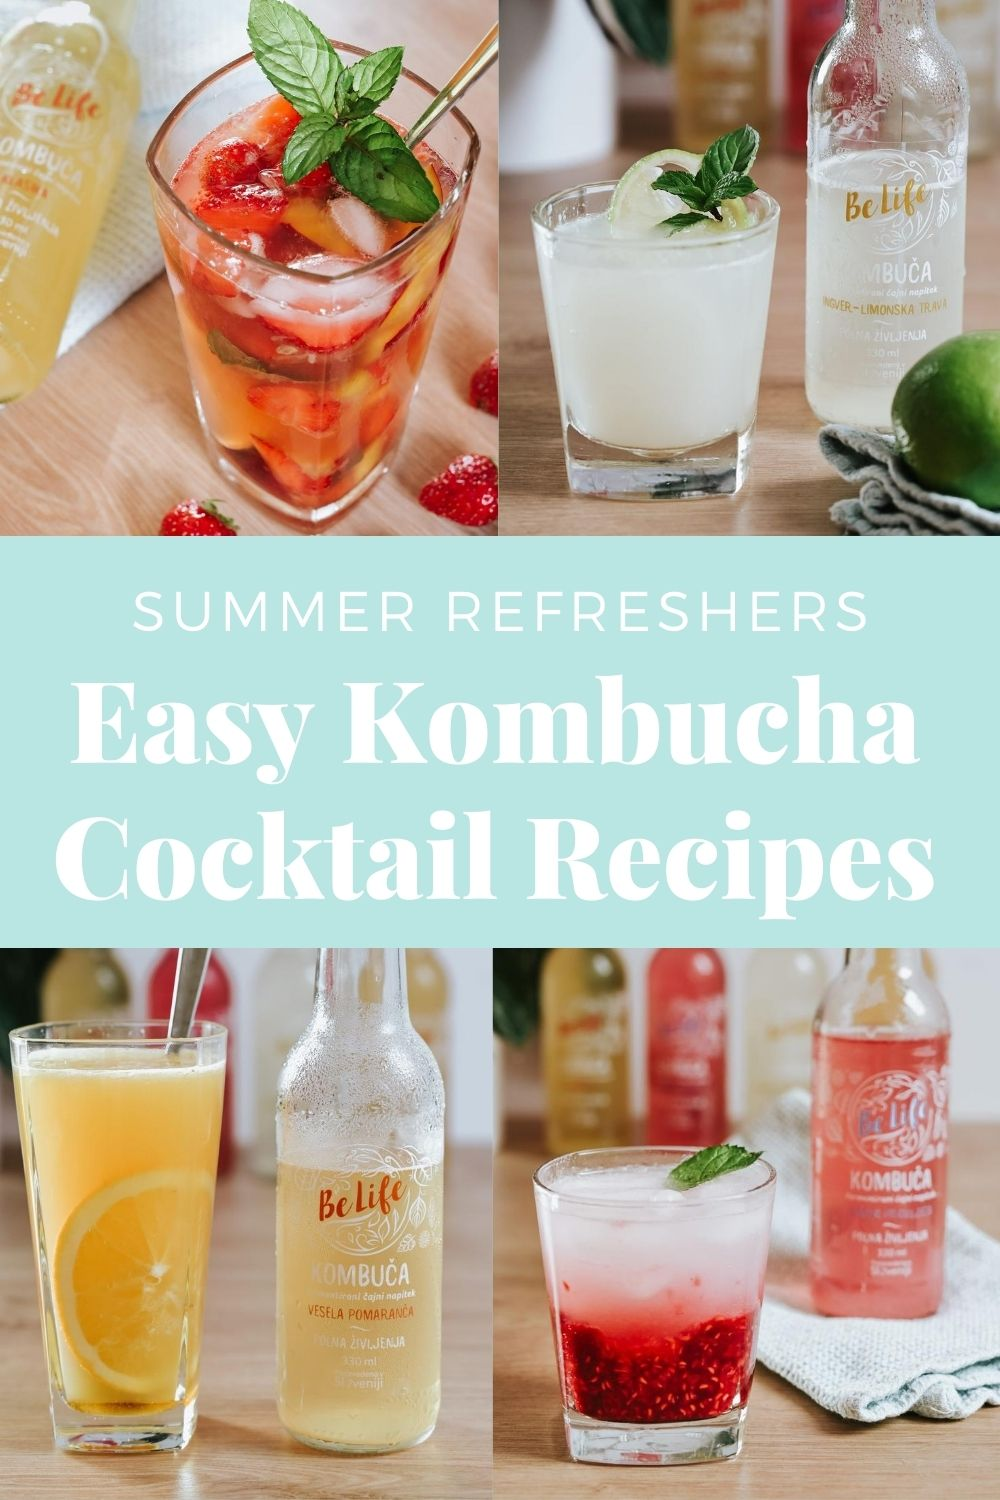 Easy Kombucha Cocktail Recipes